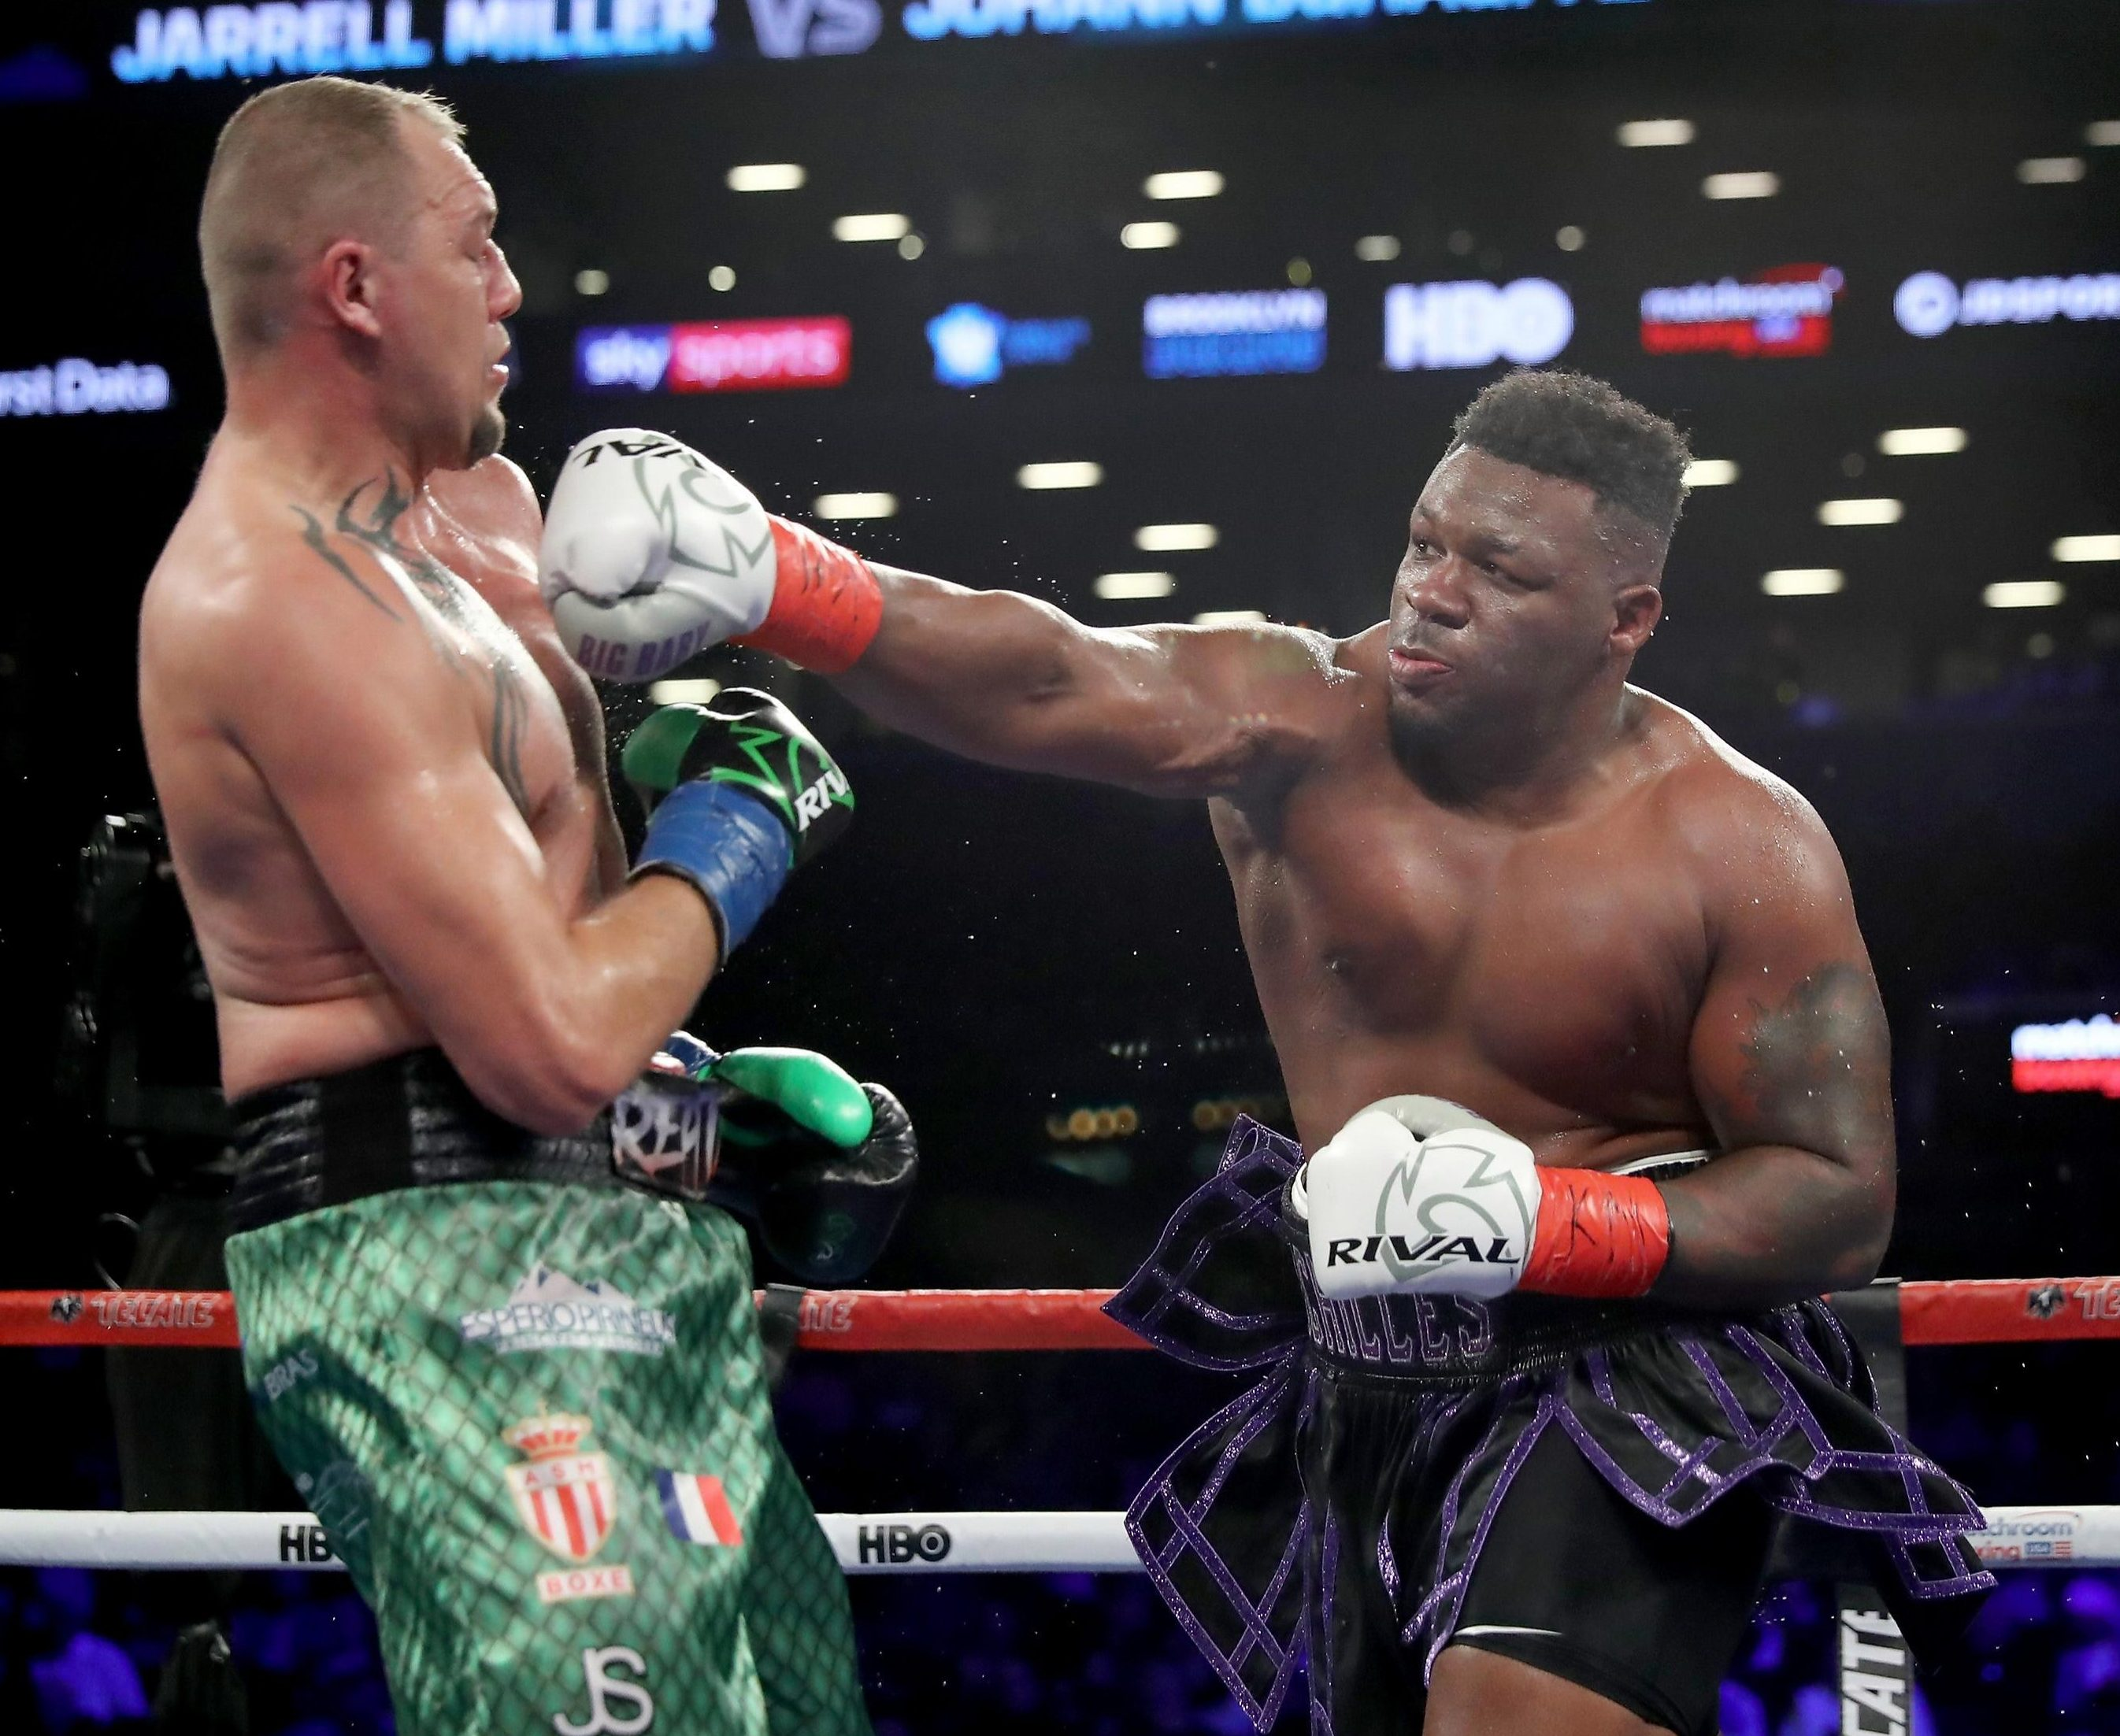 The heavyweight boxer sent a number of offers to potential opponents but could not agree a deal